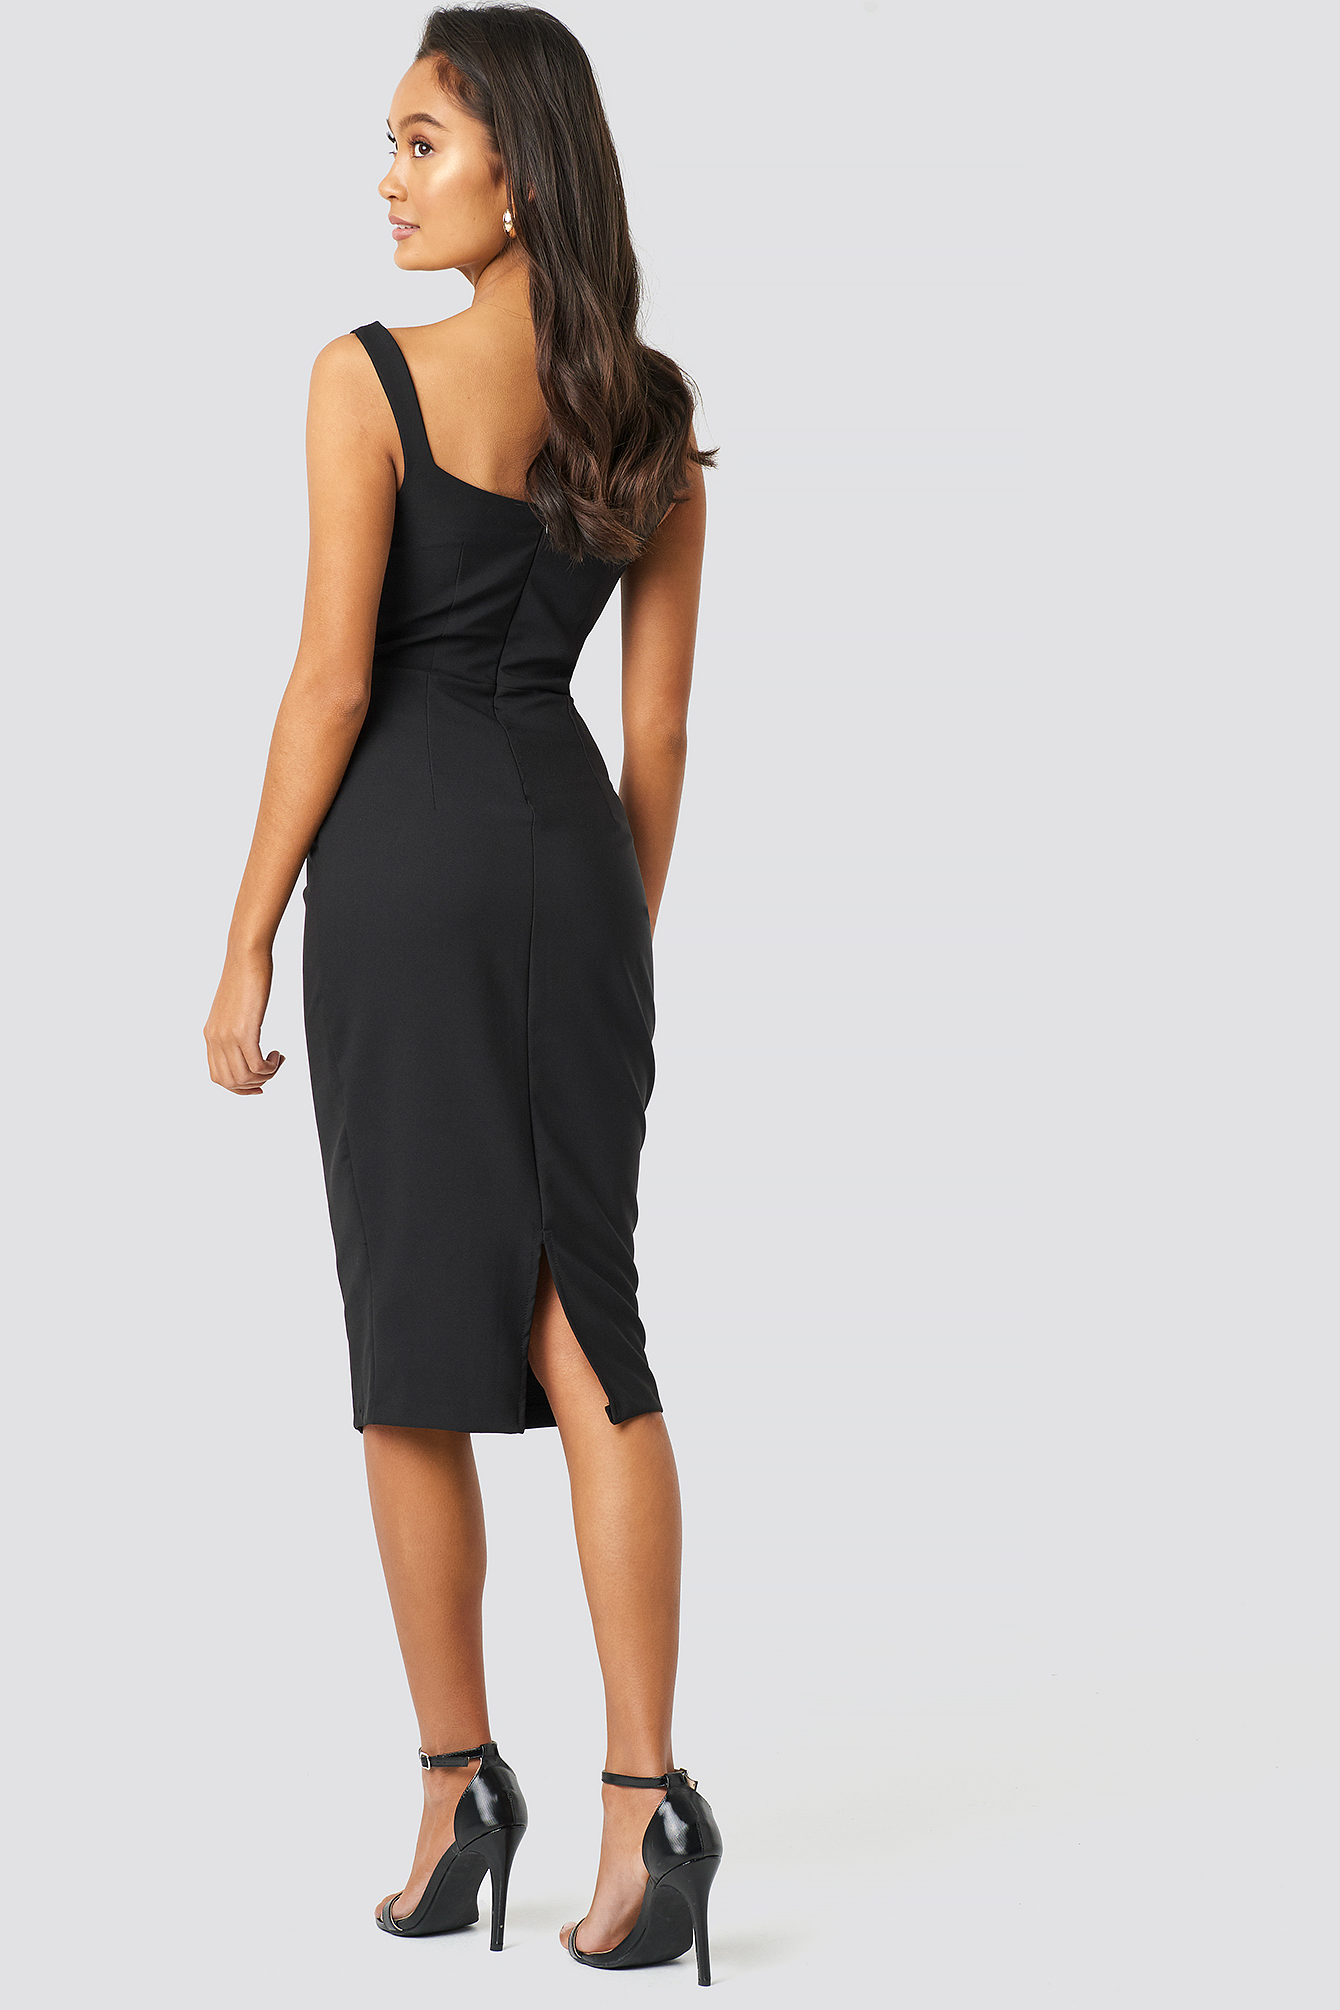 Milla Shoulder Straps Midi Dress NA-KD.COM